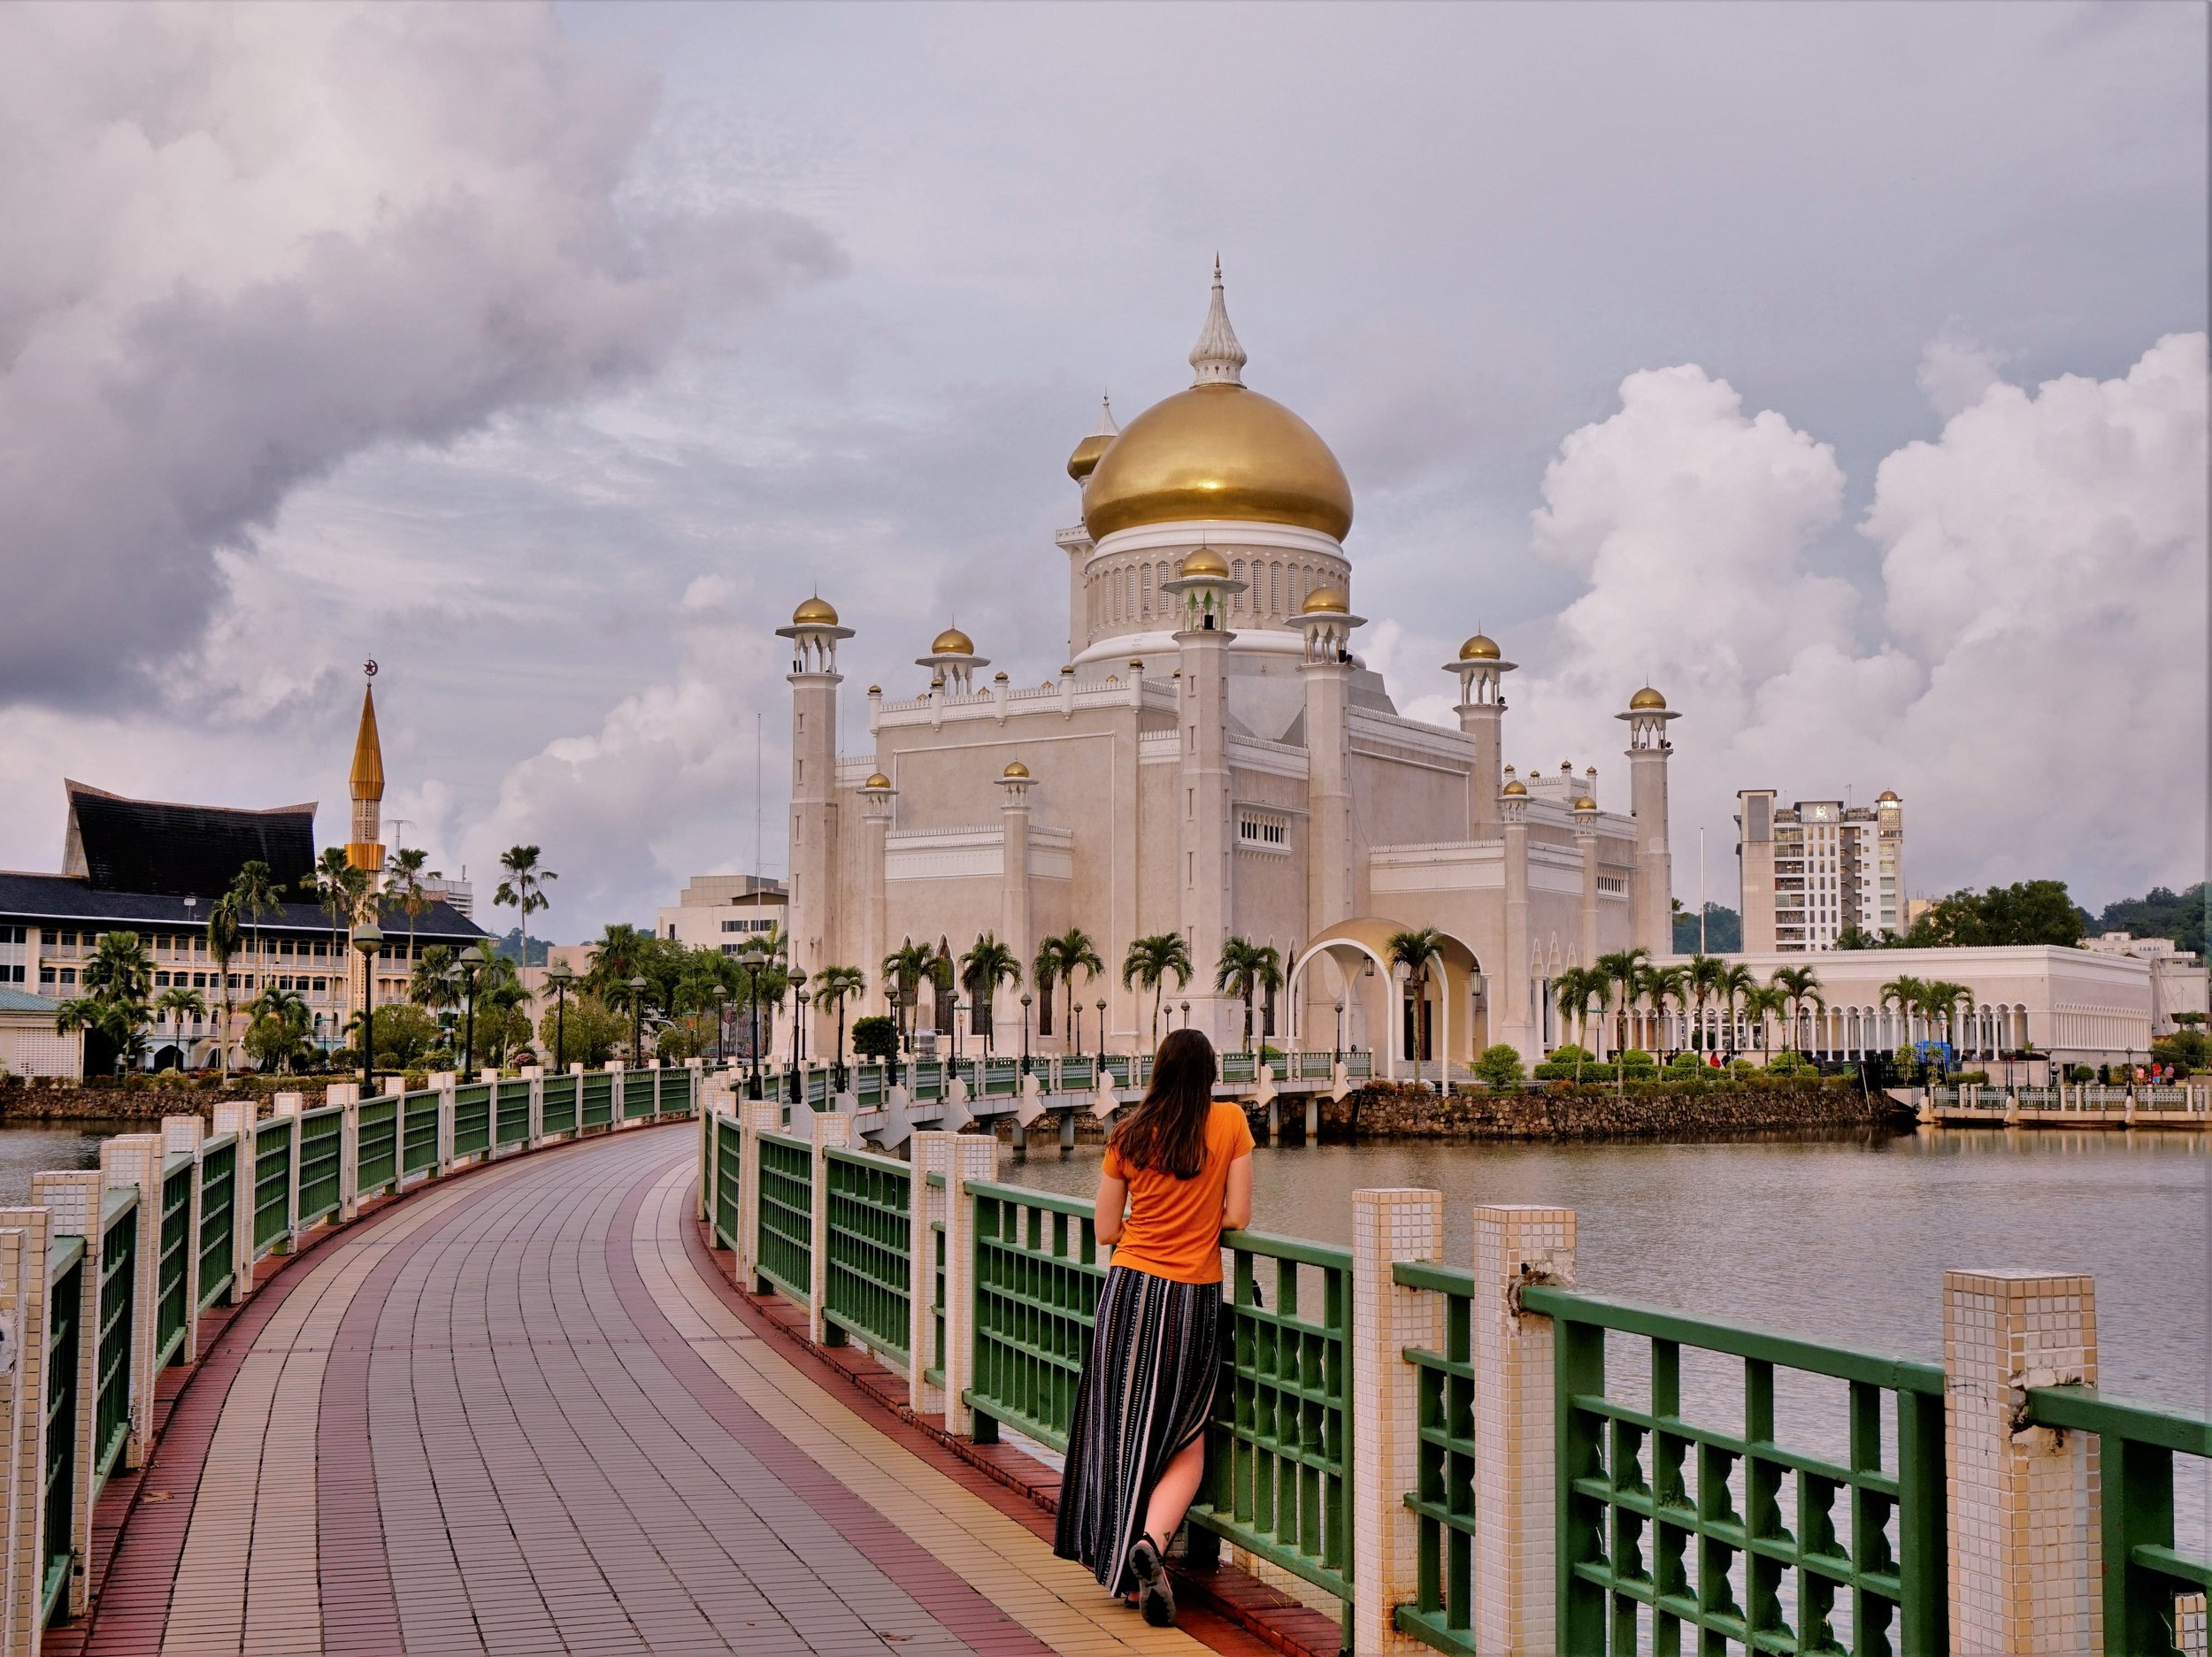 Omar Ali Saifuddien Mosque is one of the best things to see in Brunei